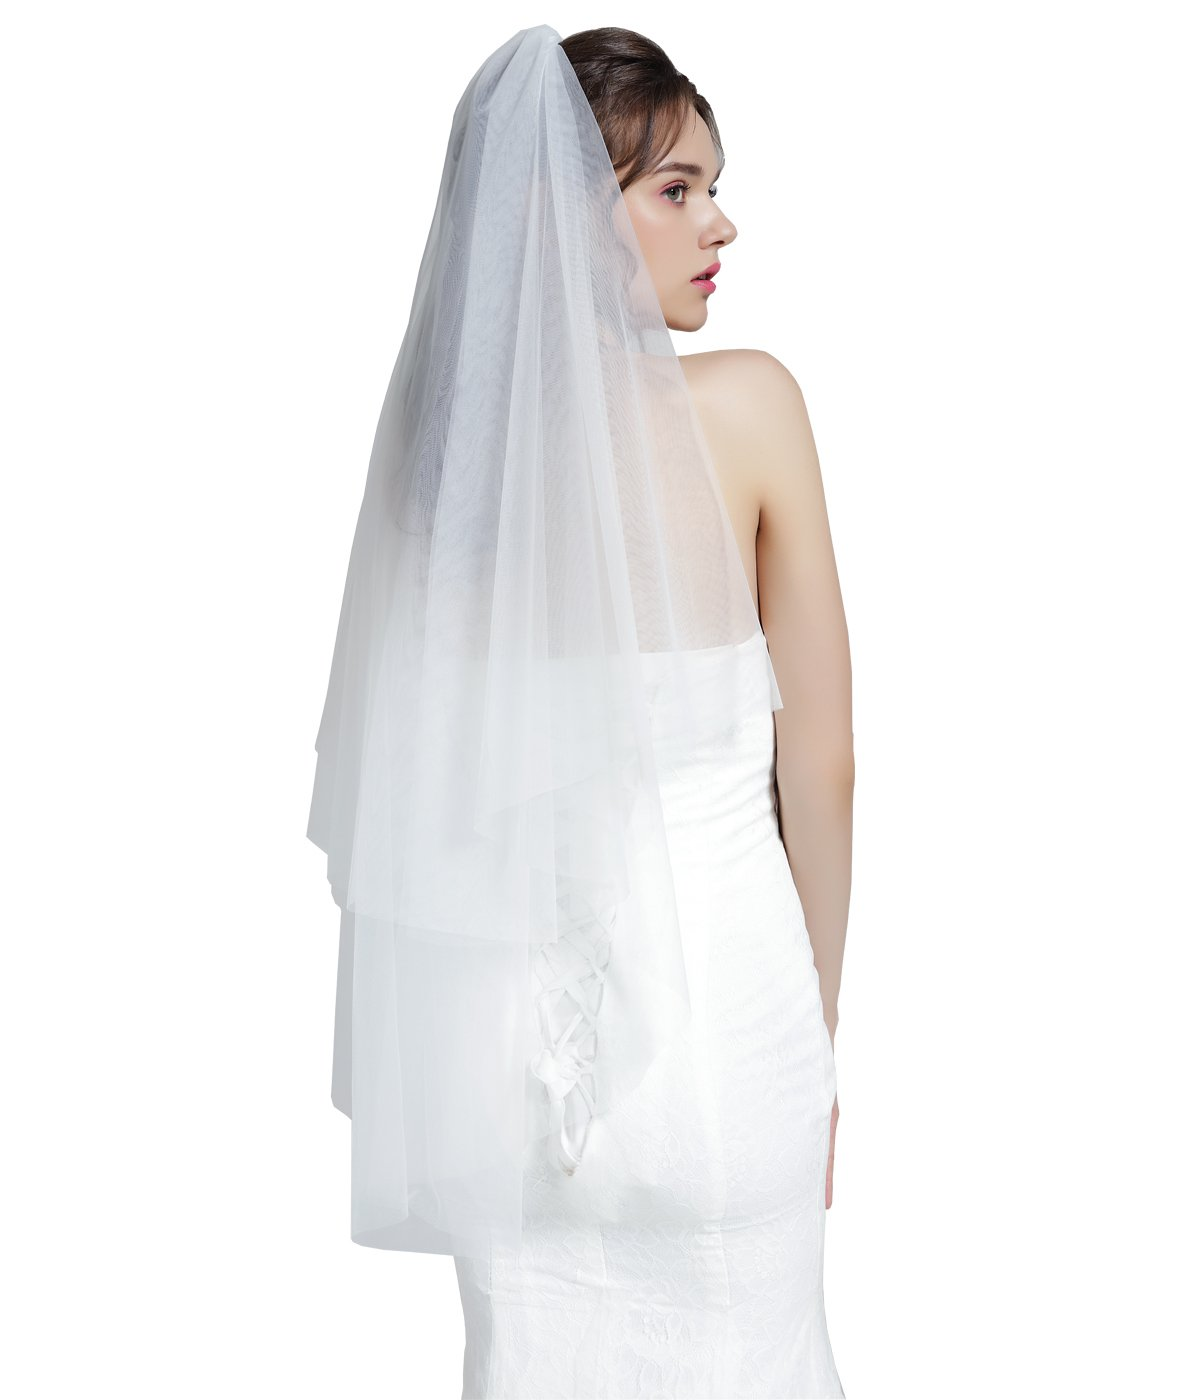 Wedding Bridal Veil with Comb 2 Tier Cut Edge Elbow Length 28'' White